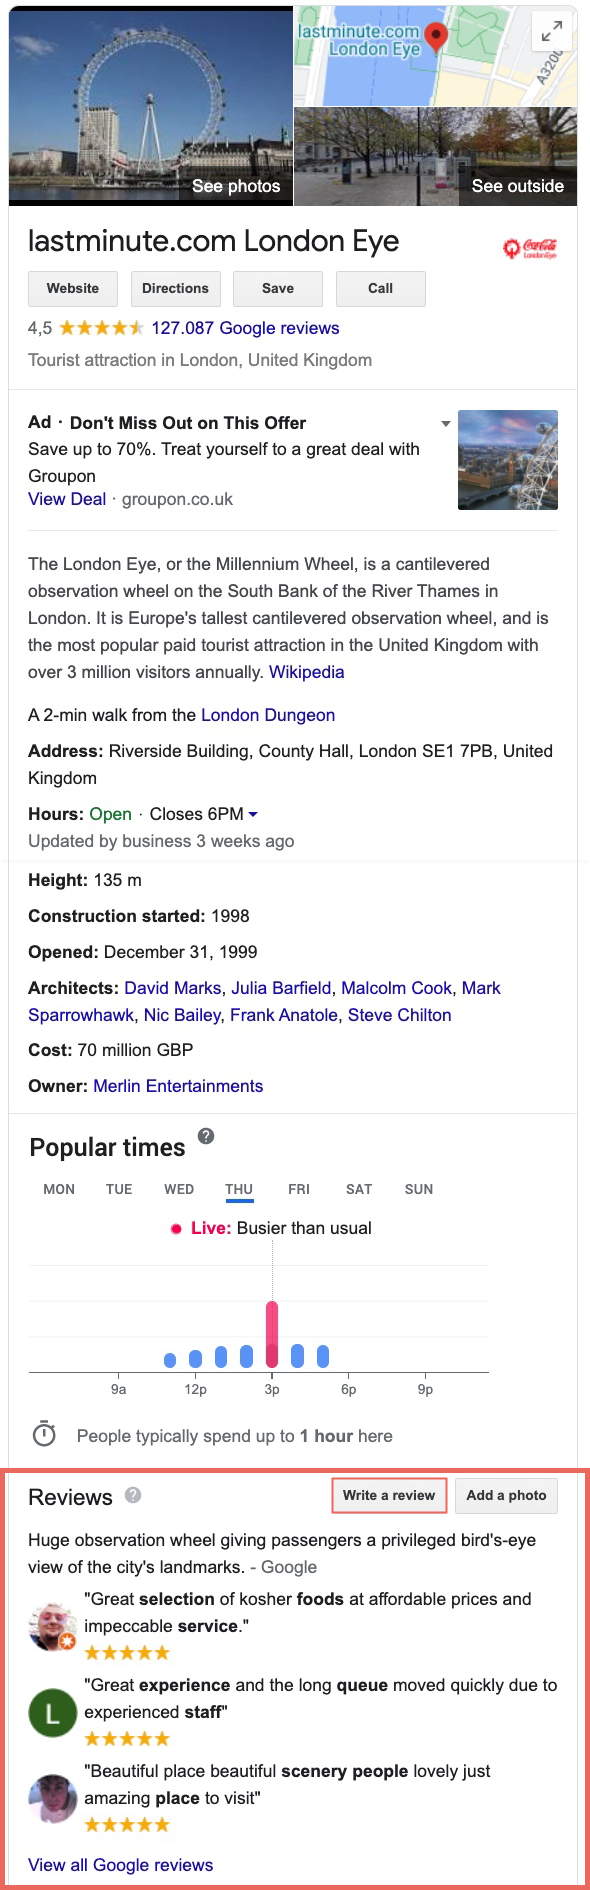 """You can see the Google My Business profile of London Eyes. In addition to general information about the address, opening hours, route, website, etc., you will also find the reviews that have already been submitted. Click the """"Write review"""" button in the company's info field to open the window where you can enter your review. You can also view all Google reviews that have already been submitted."""